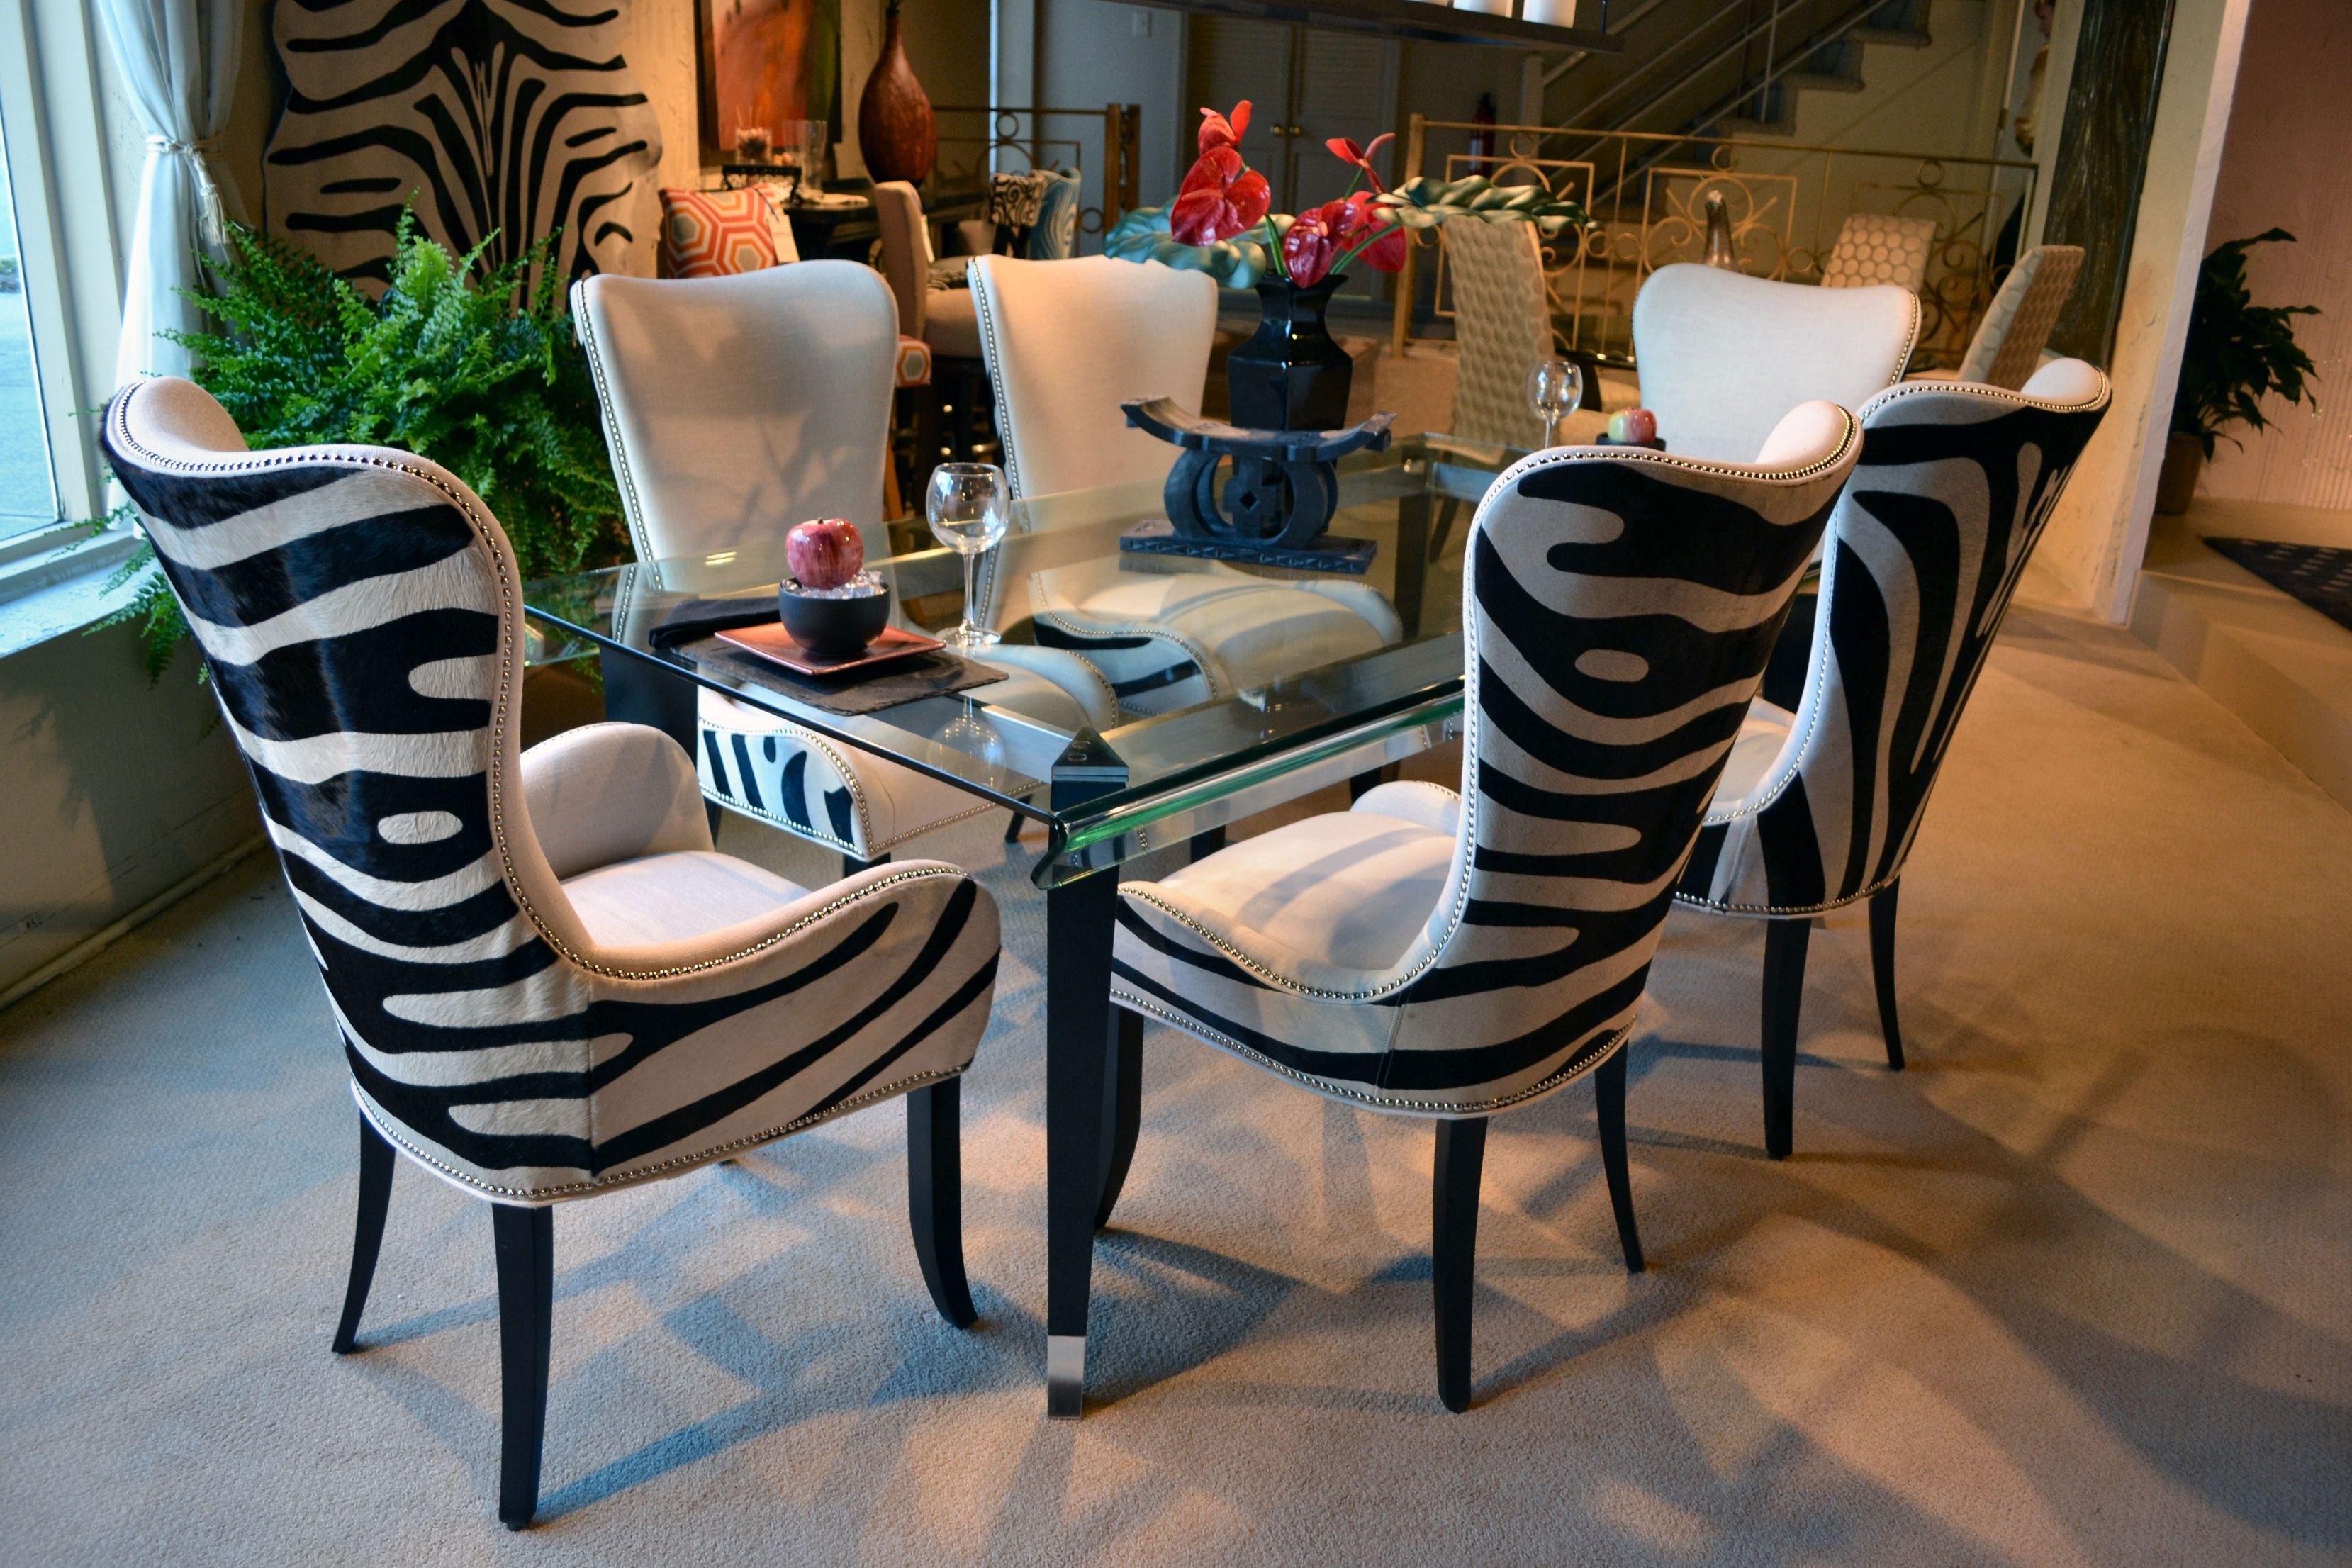 Denmark 01 512 Side Chair and 01 513 Arm Chair with zebra hair on